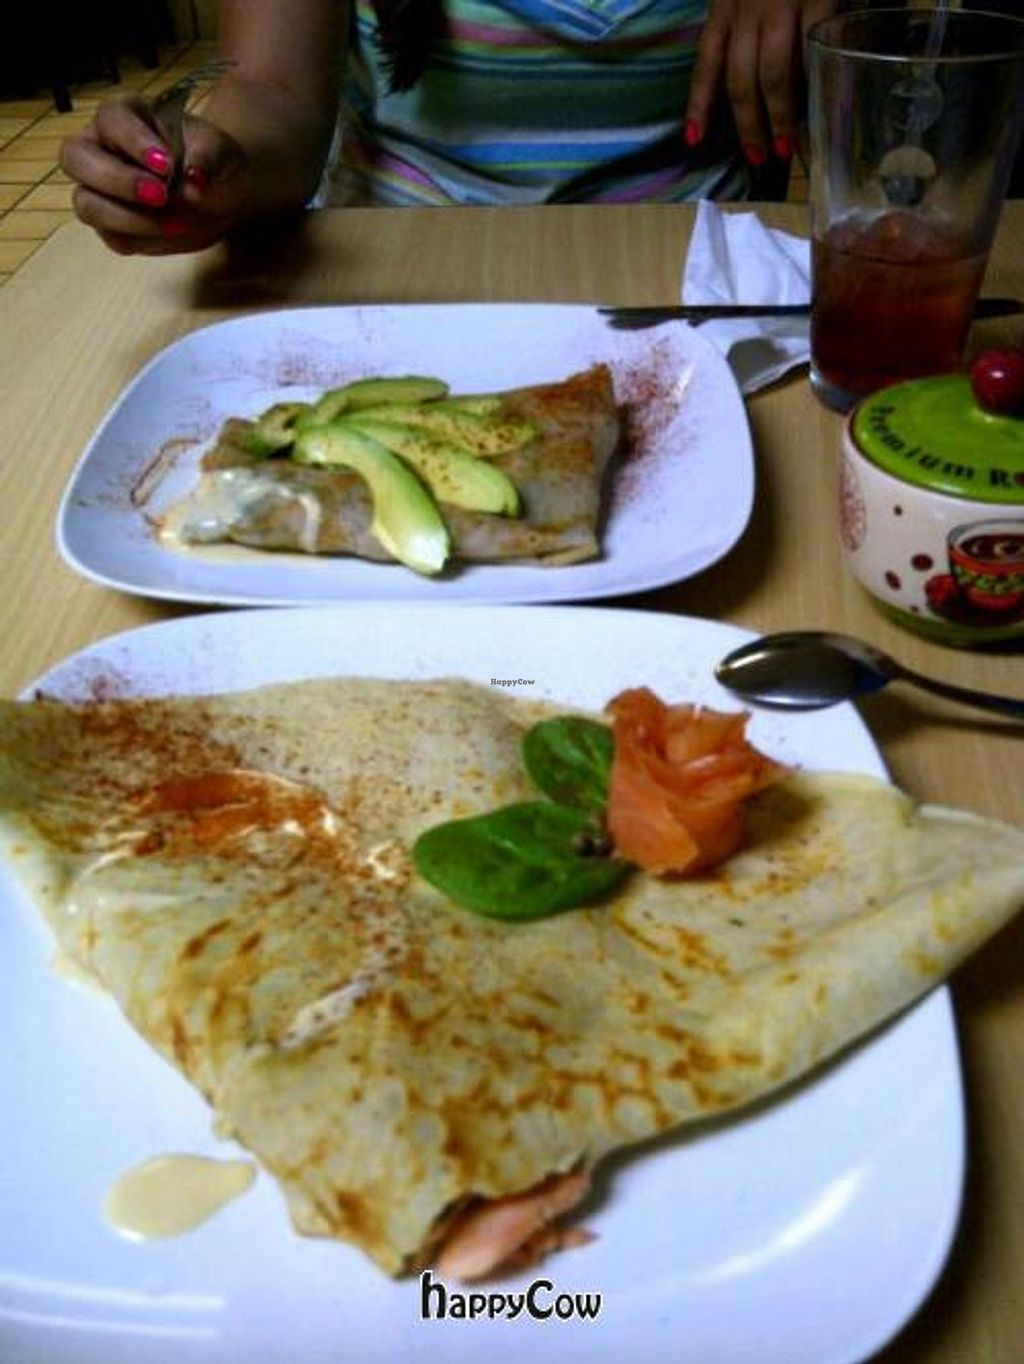 """Photo of CLOSED: Joie de Crepe  by <a href=""""/members/profile/vane1809"""">vane1809</a> <br/>Uhmmm vegan <br/> August 31, 2012  - <a href='/contact/abuse/image/34112/37230'>Report</a>"""